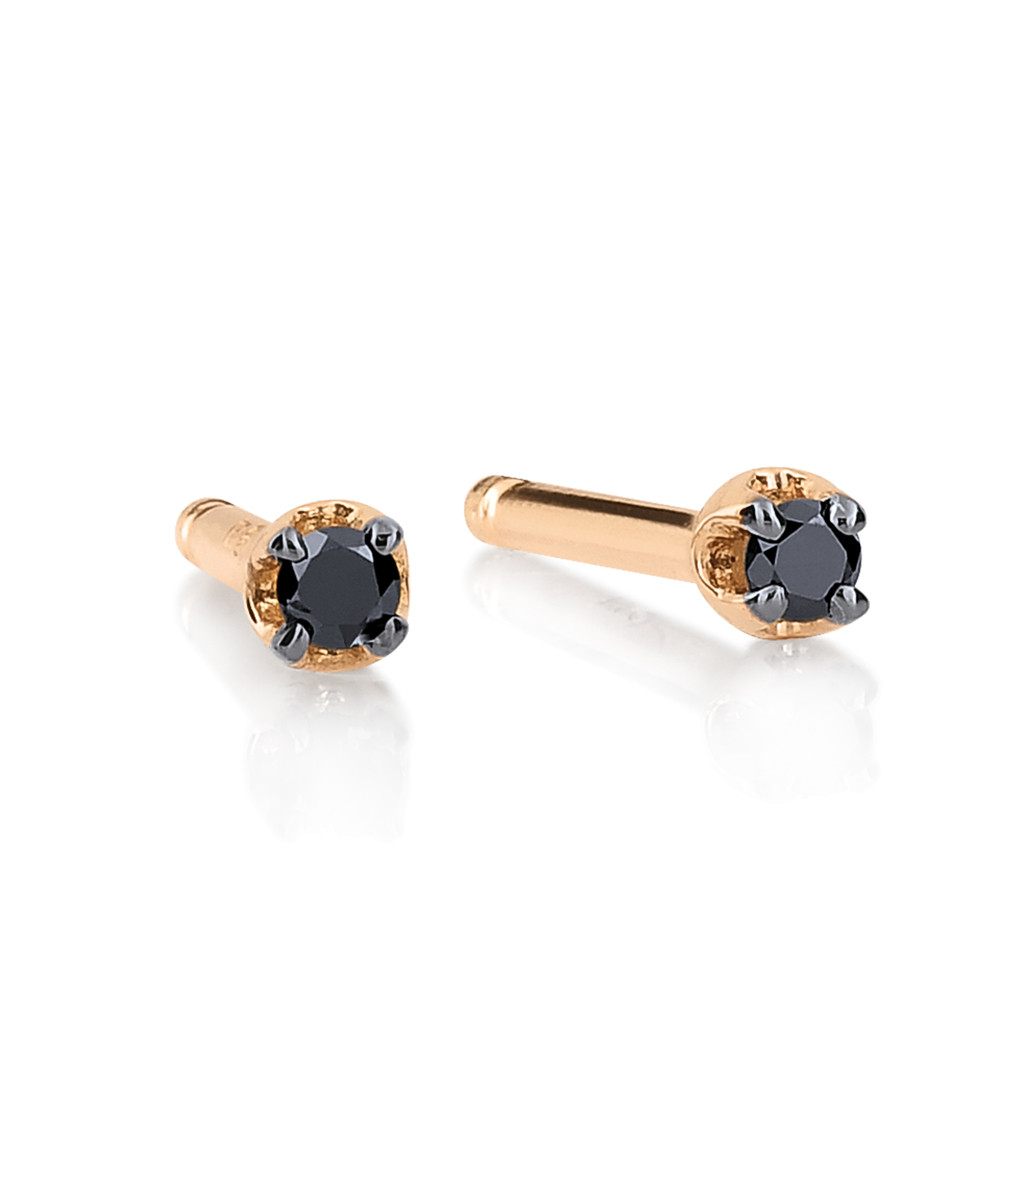 GINETTE_NY - Boucles d'oreilles Black Diamonds Icons Mini Diamants Or Rose